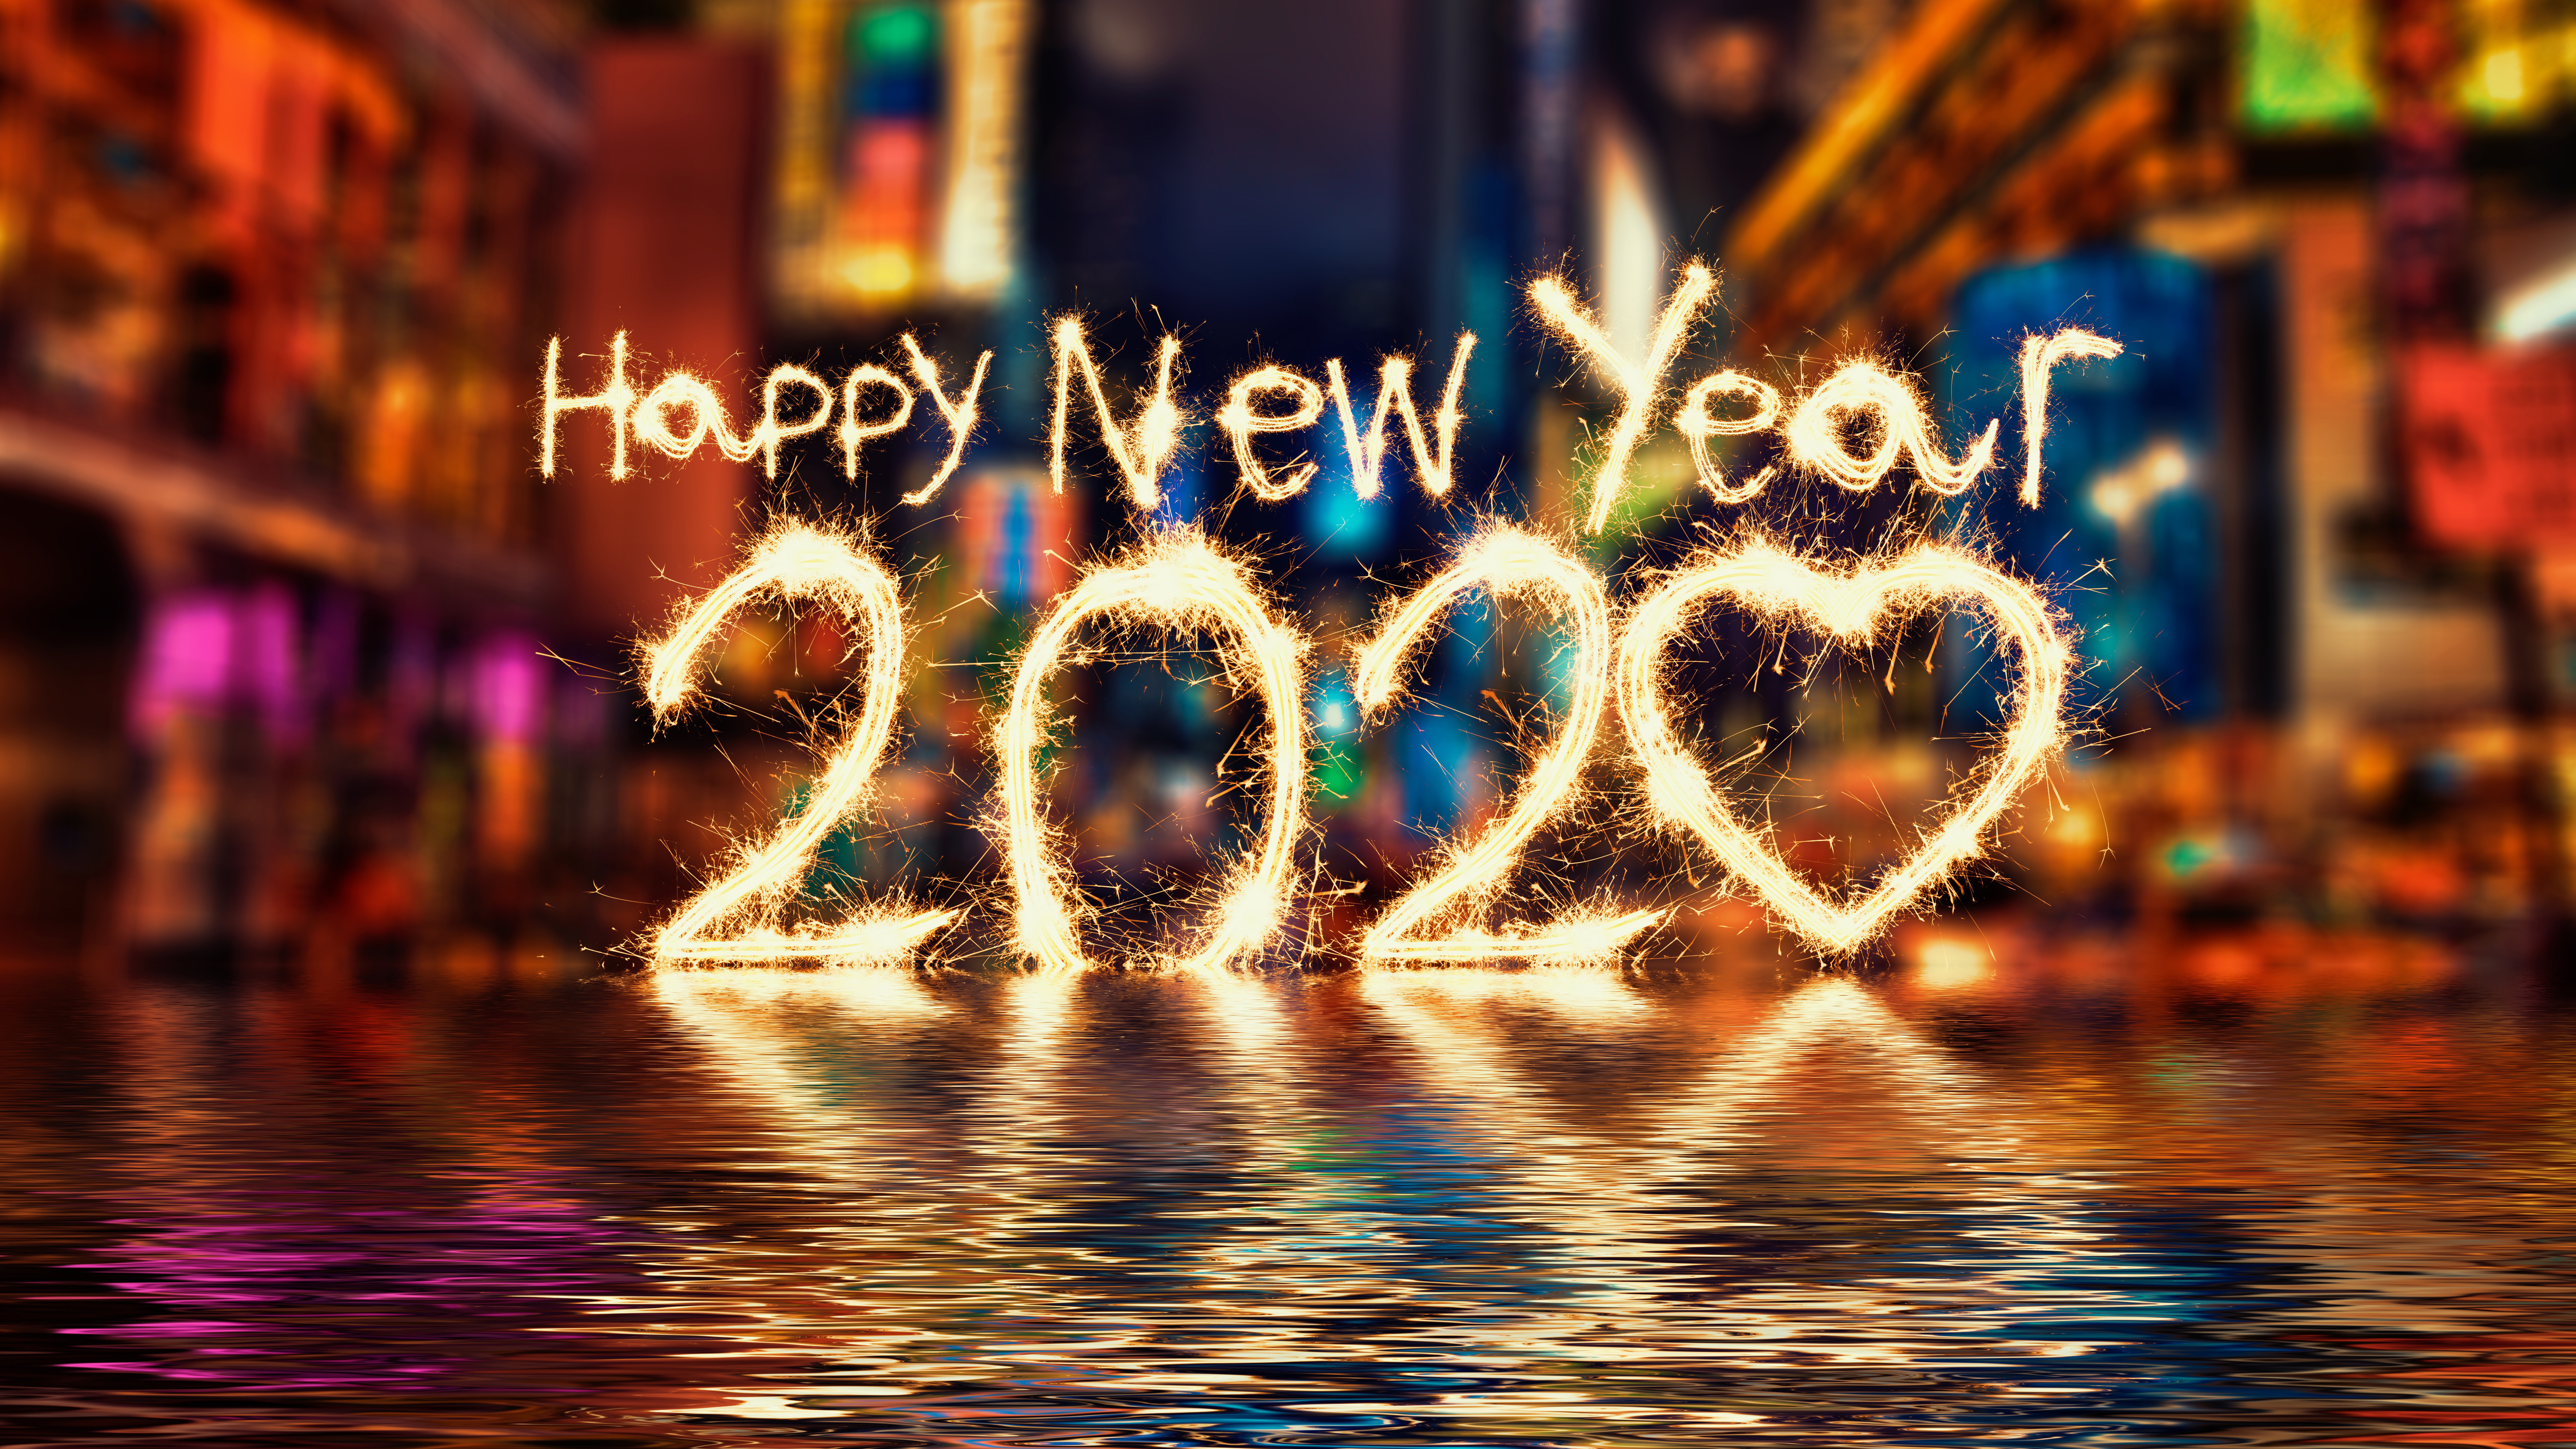 Happy New Year 2020 Wallpapers HD Wallpapers 6000x3375